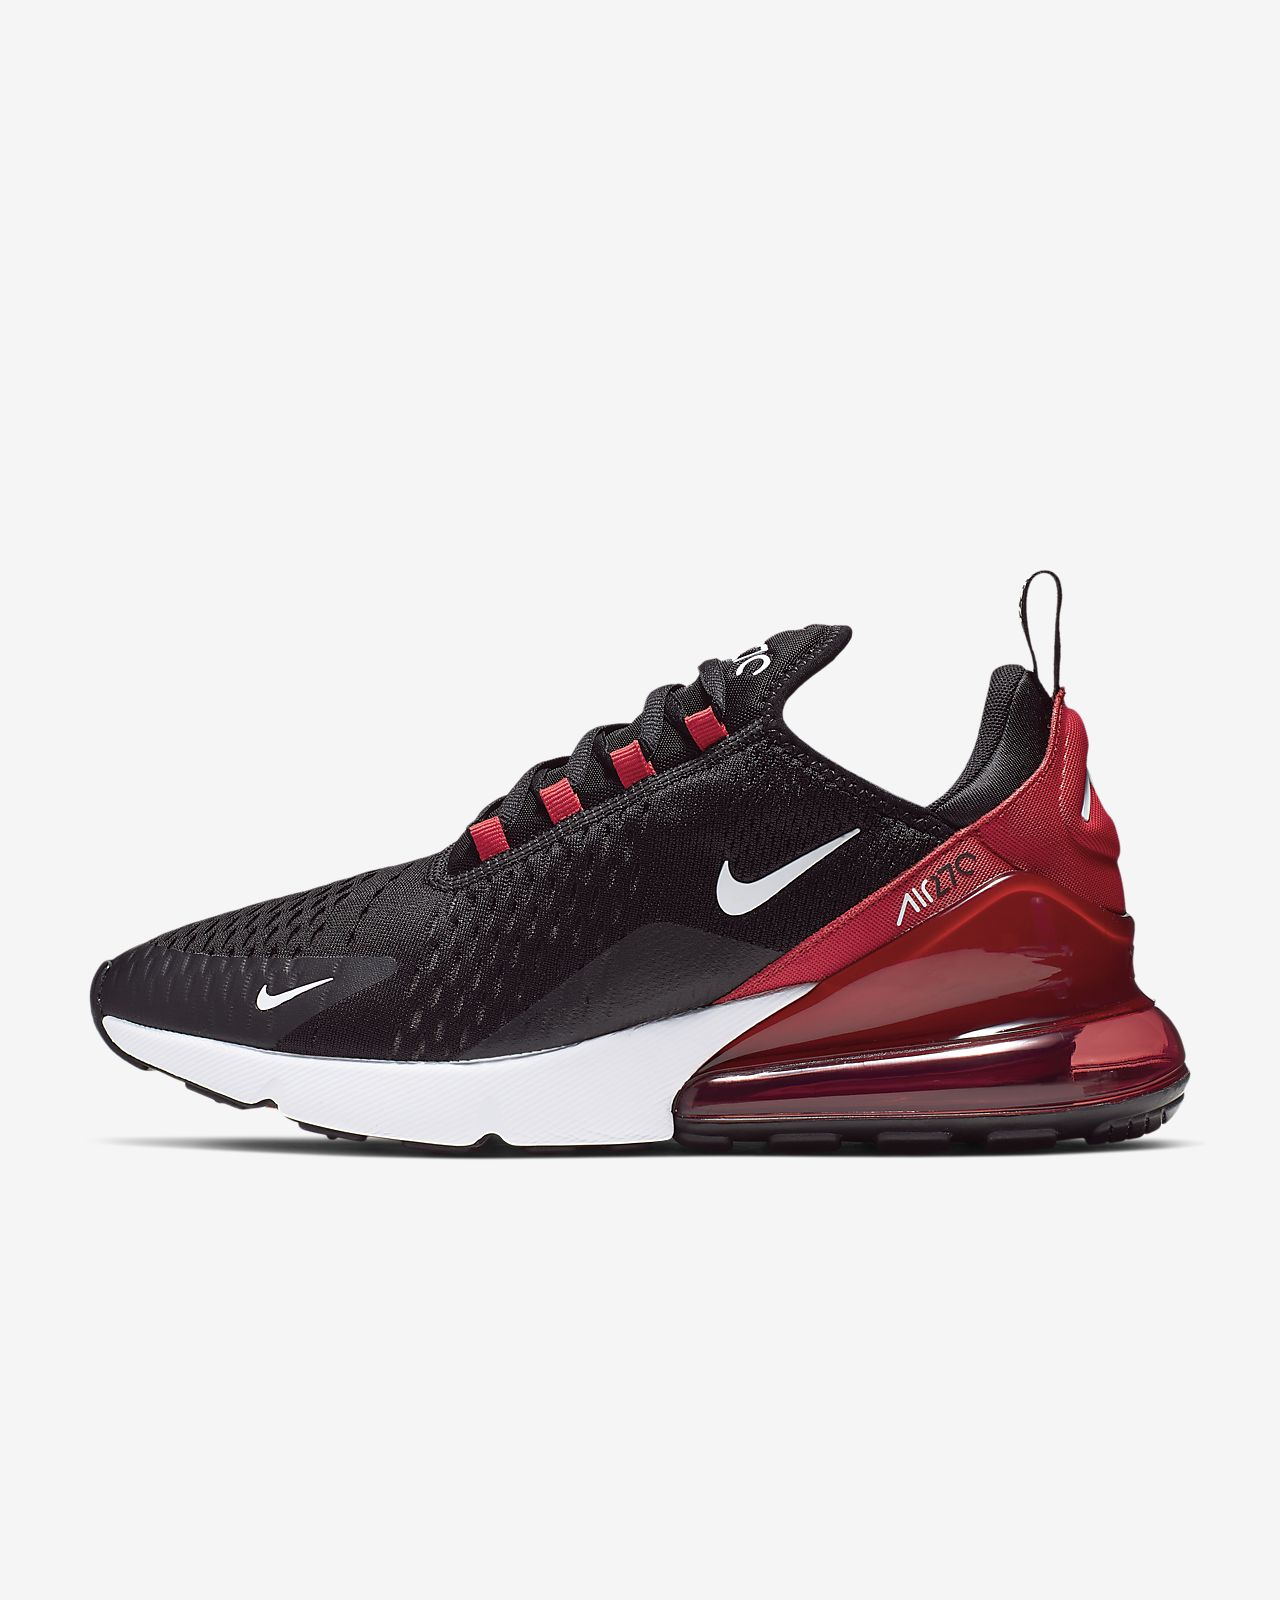 meet e07f2 fee83 Men s Shoe. Nike Air Max 270